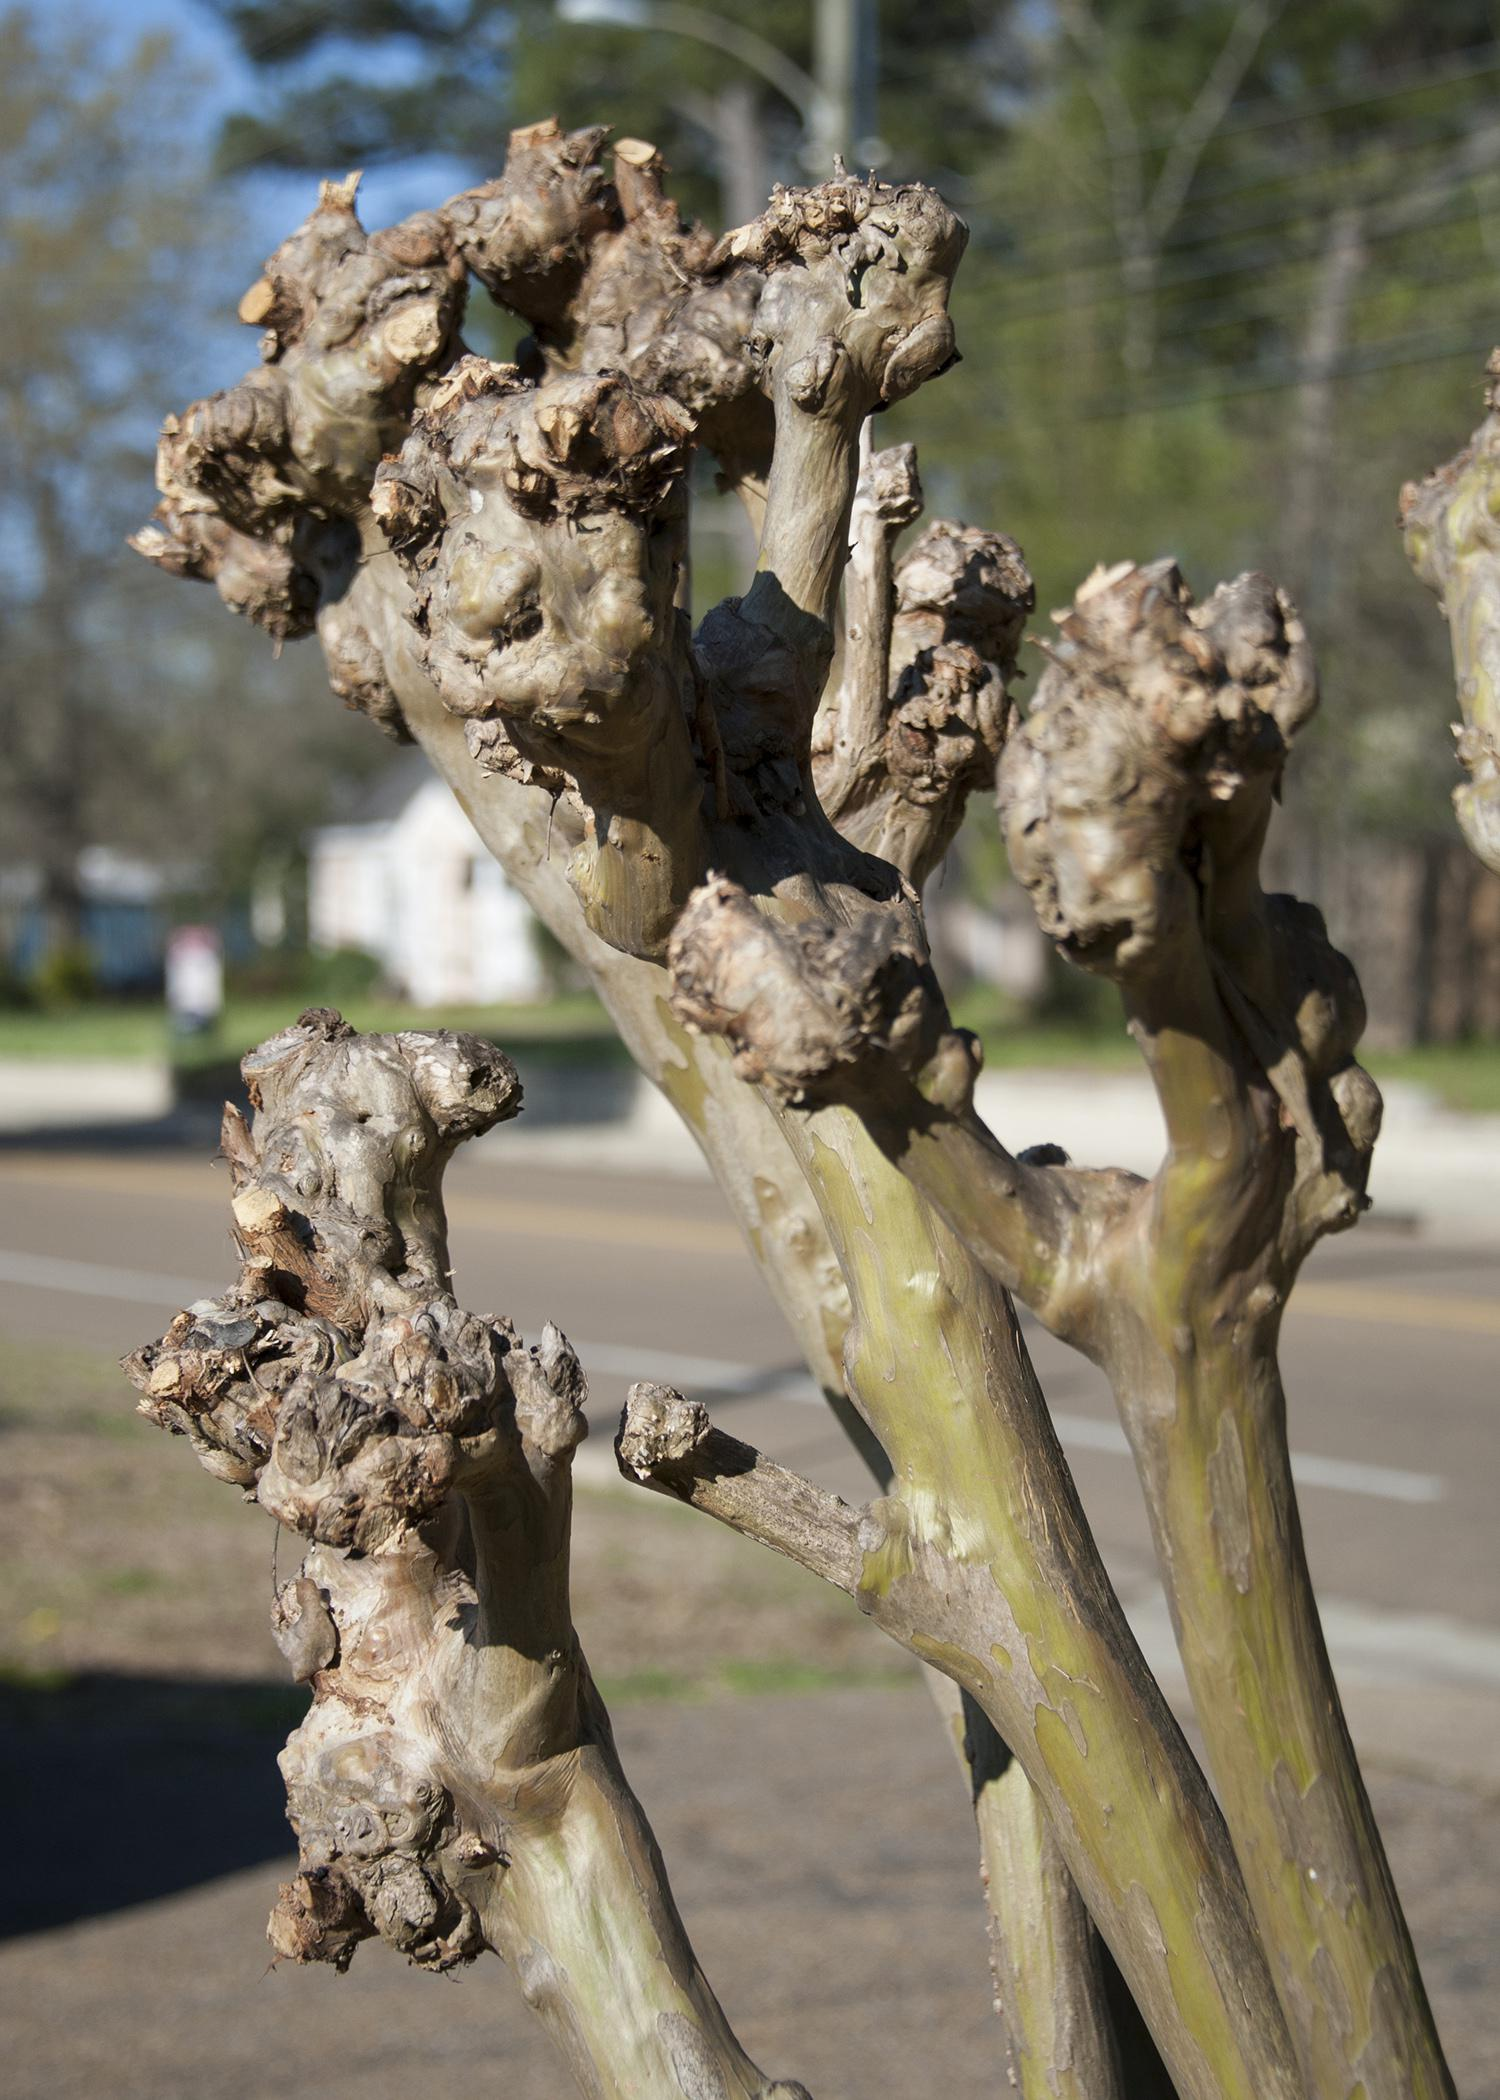 A severely pruned crape myrtle displays large knobs instead of smooth branches.